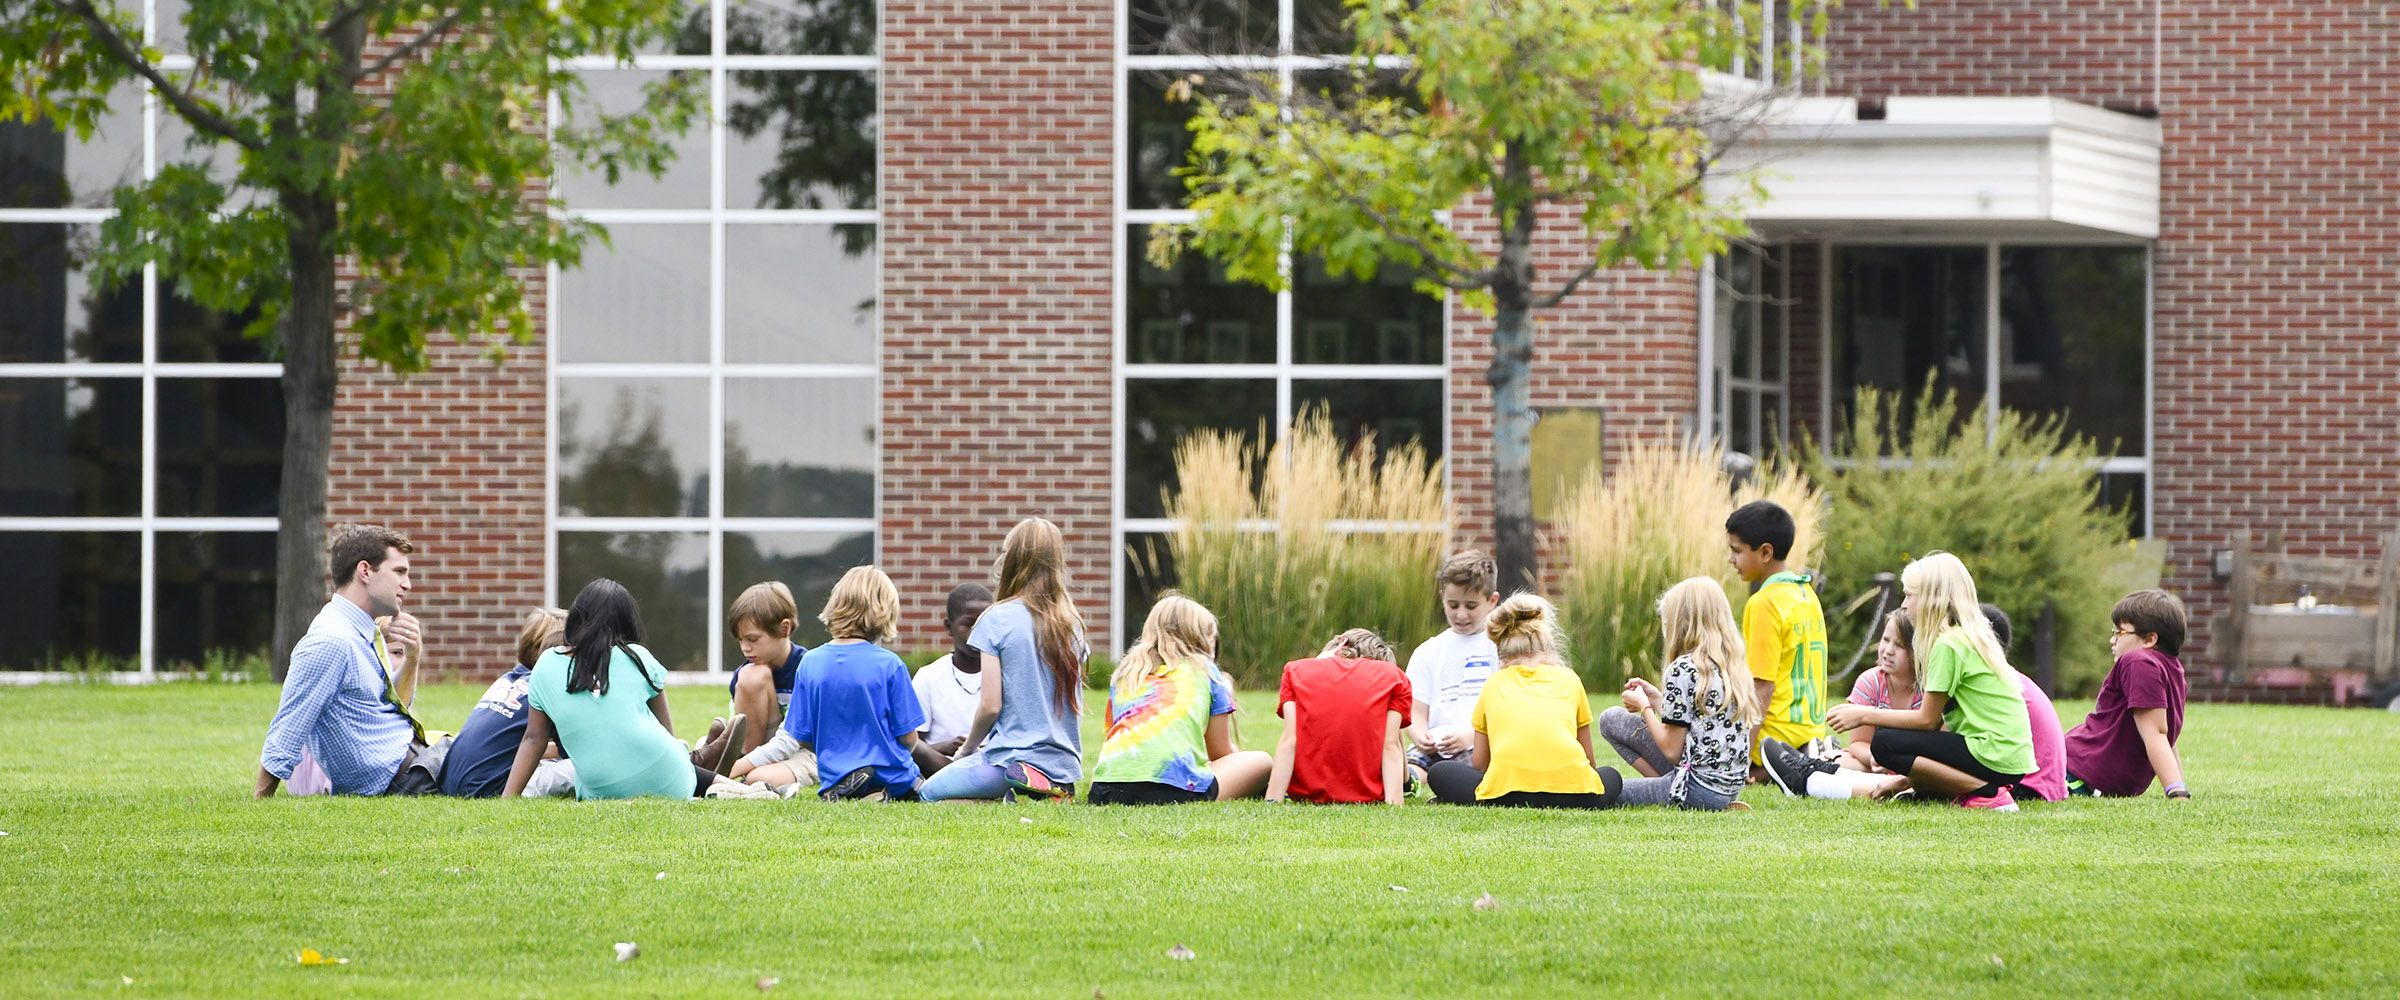 Fifth Grade class sitting outside in a circle on the lawn at Colorado Academy, a top private PK-12 school in Denver.